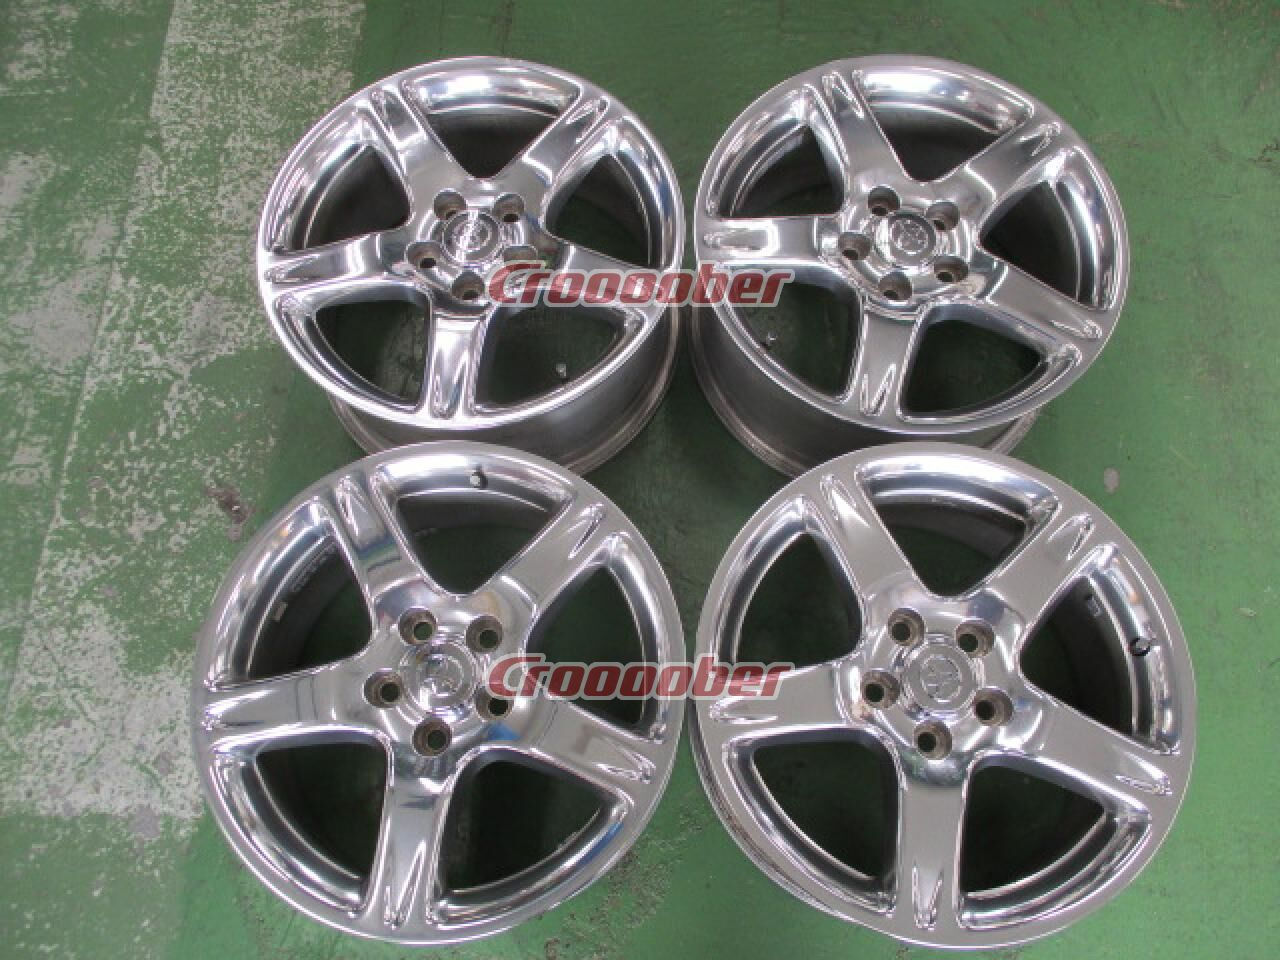 how about as a for studless toyota aristo jzs 160 vertex